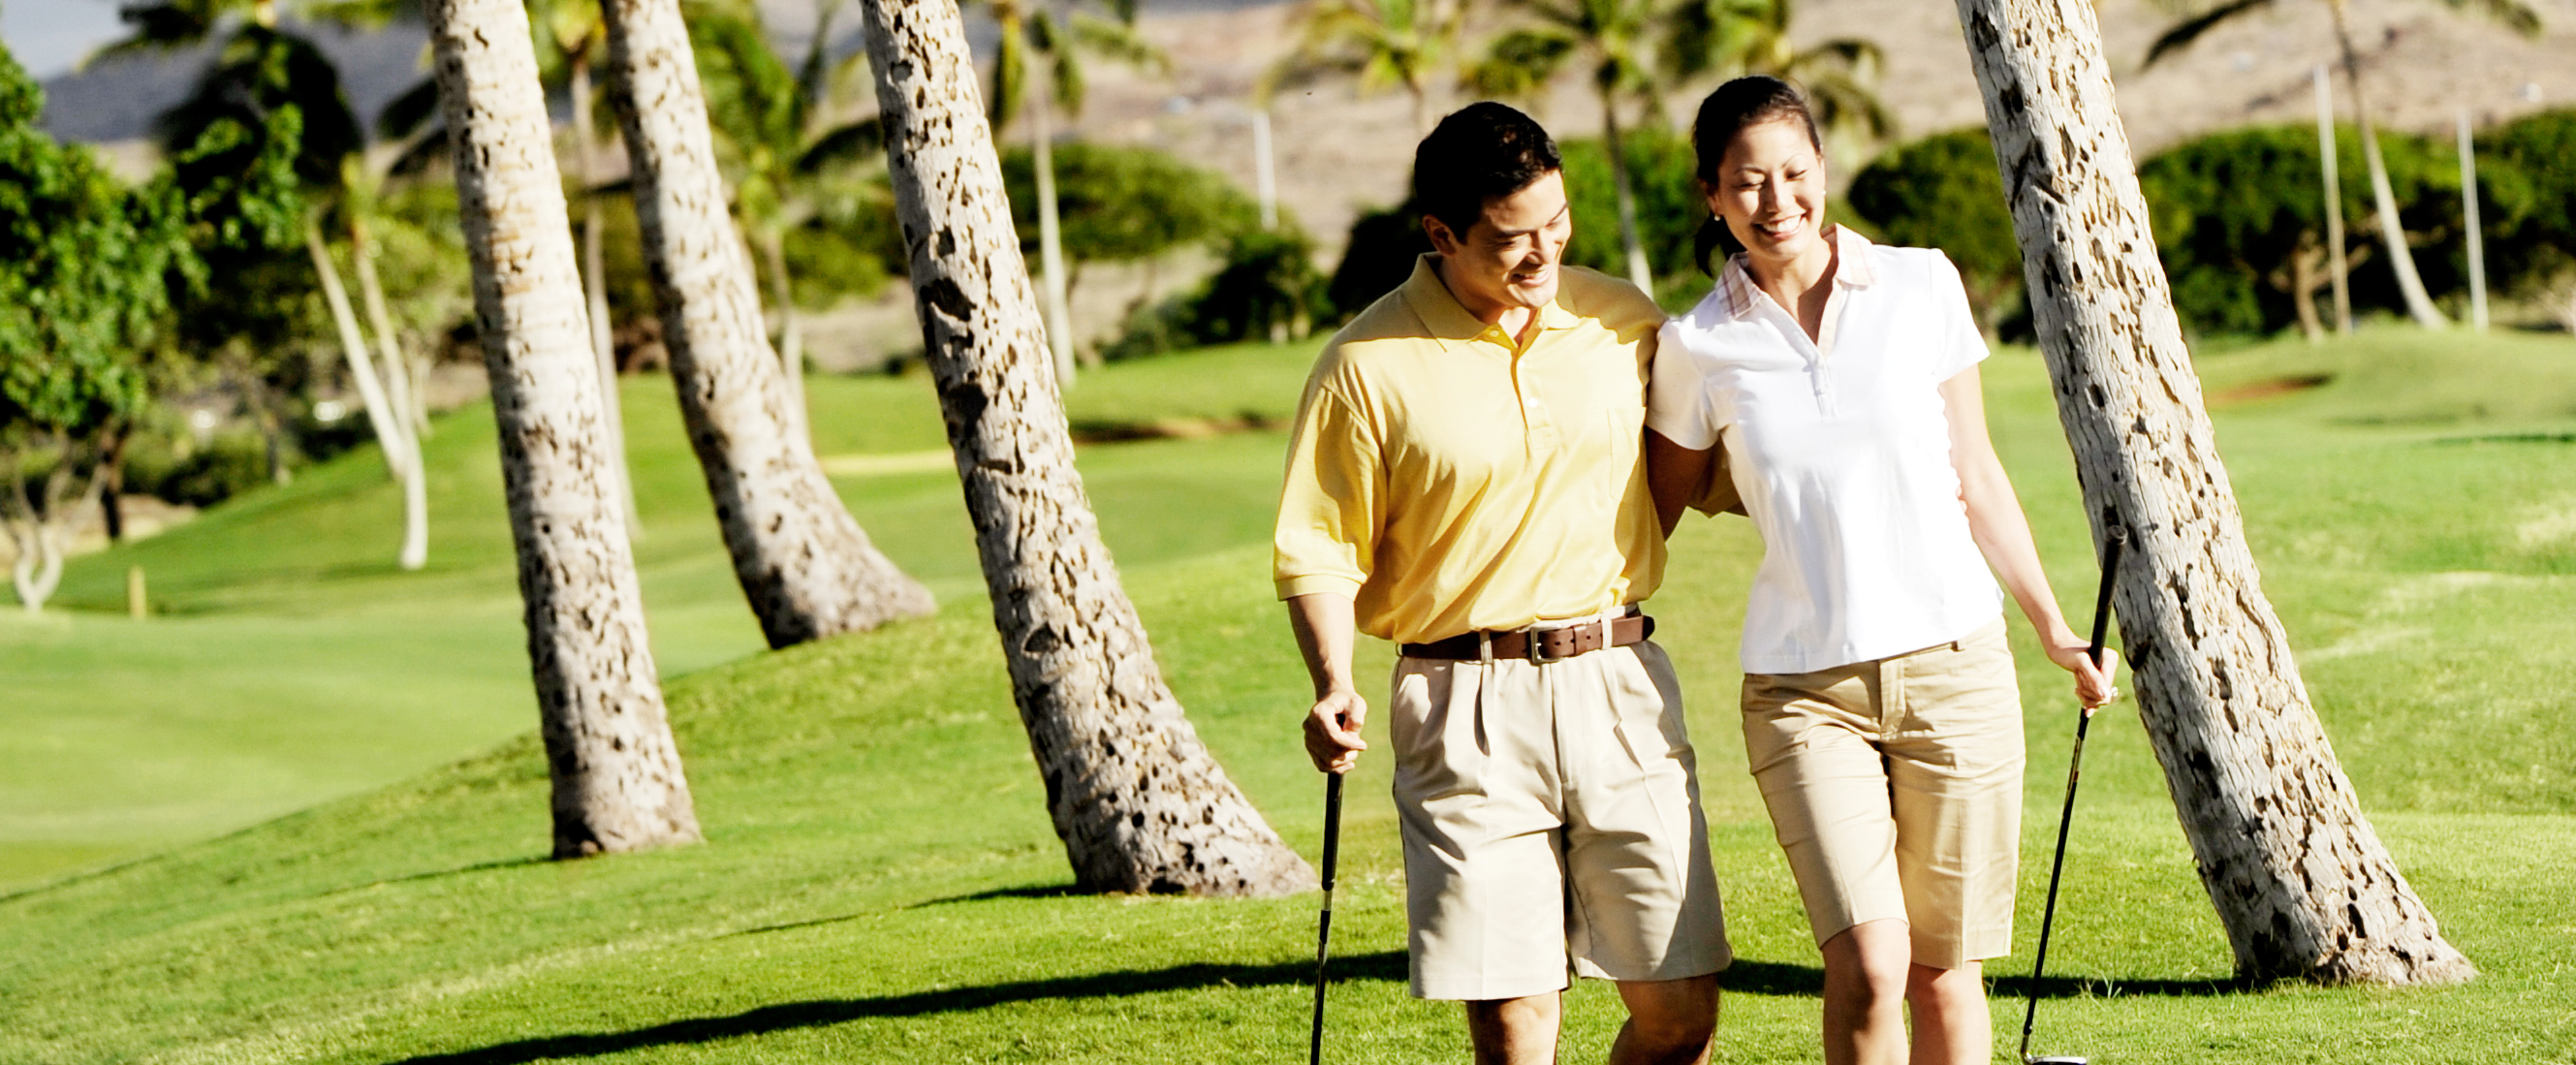 A man and woman walk across the grass with their arms around each other, each carrying a golf club